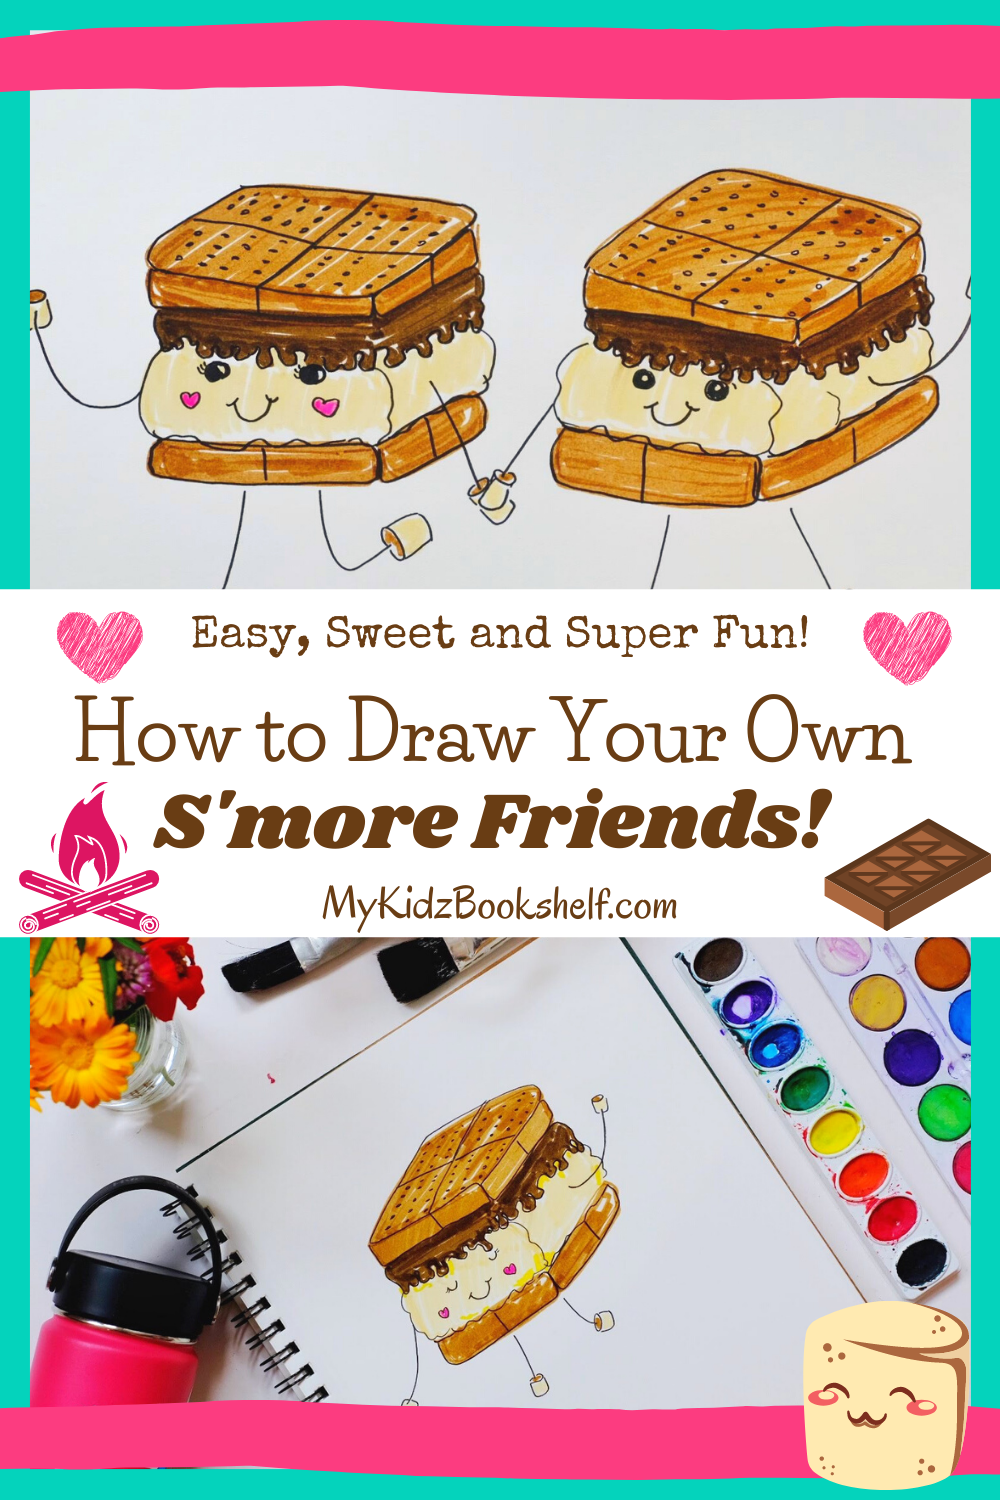 How to Draw Your Own S'more Friends Pinterest pin illustration of s'mores with art supplies